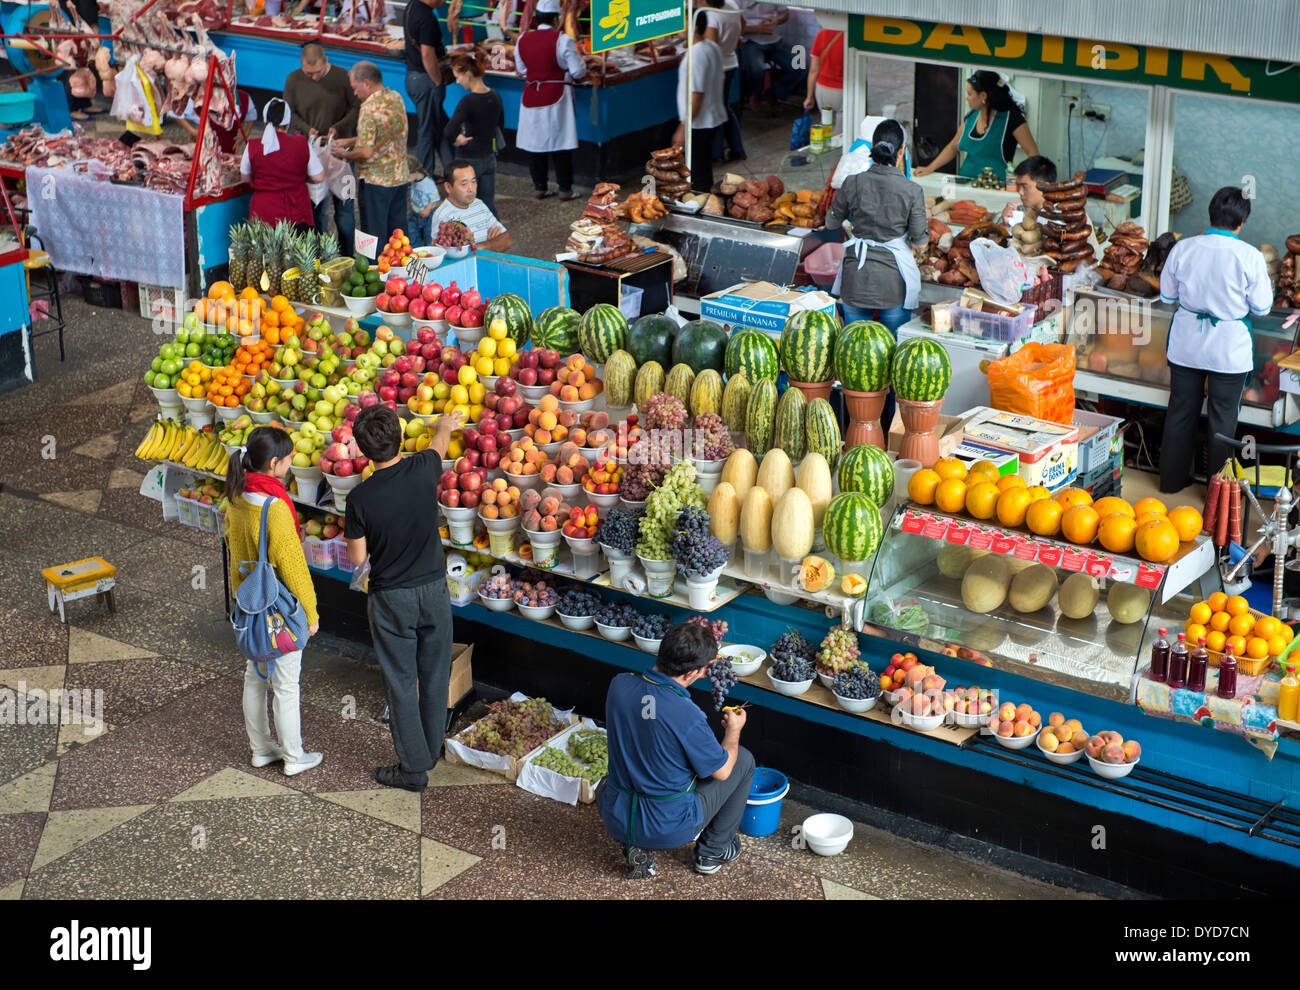 Fruit stall at the Green Market, Zelyoni Bazaar, Almaty, Kazakhstan - Stock Image